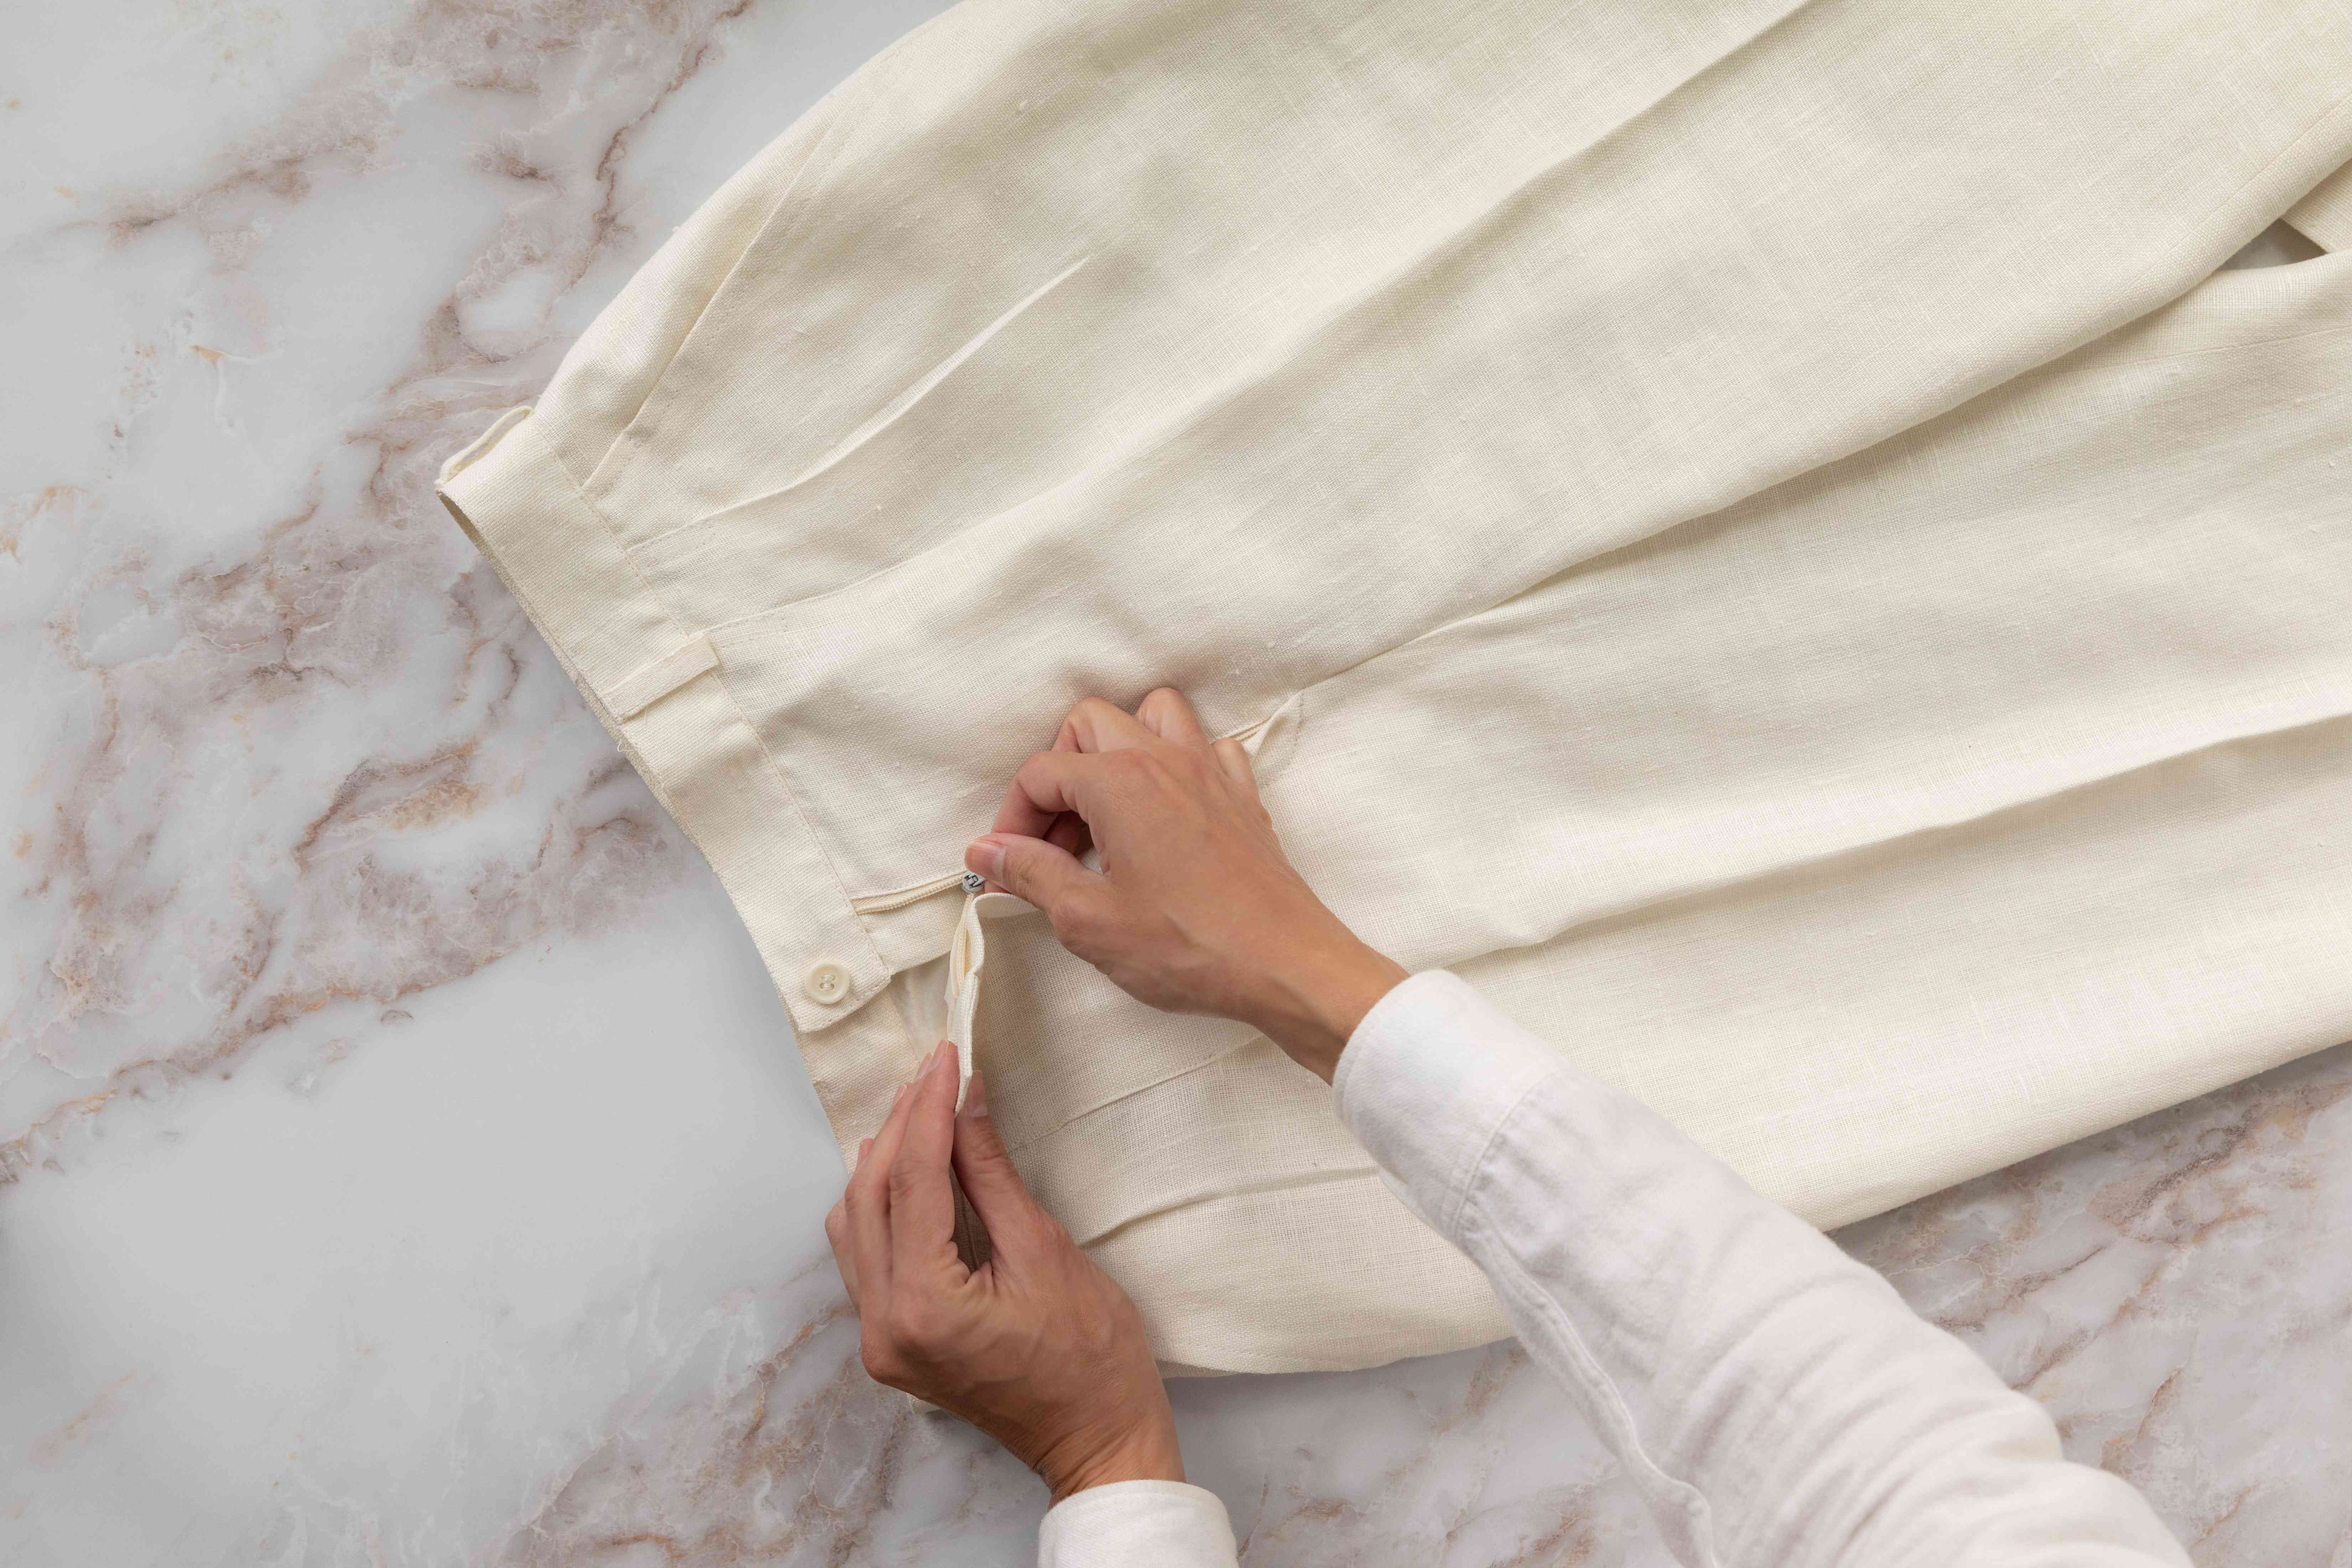 Cream-colored pants with creases laid on white marbled surface being zipped up